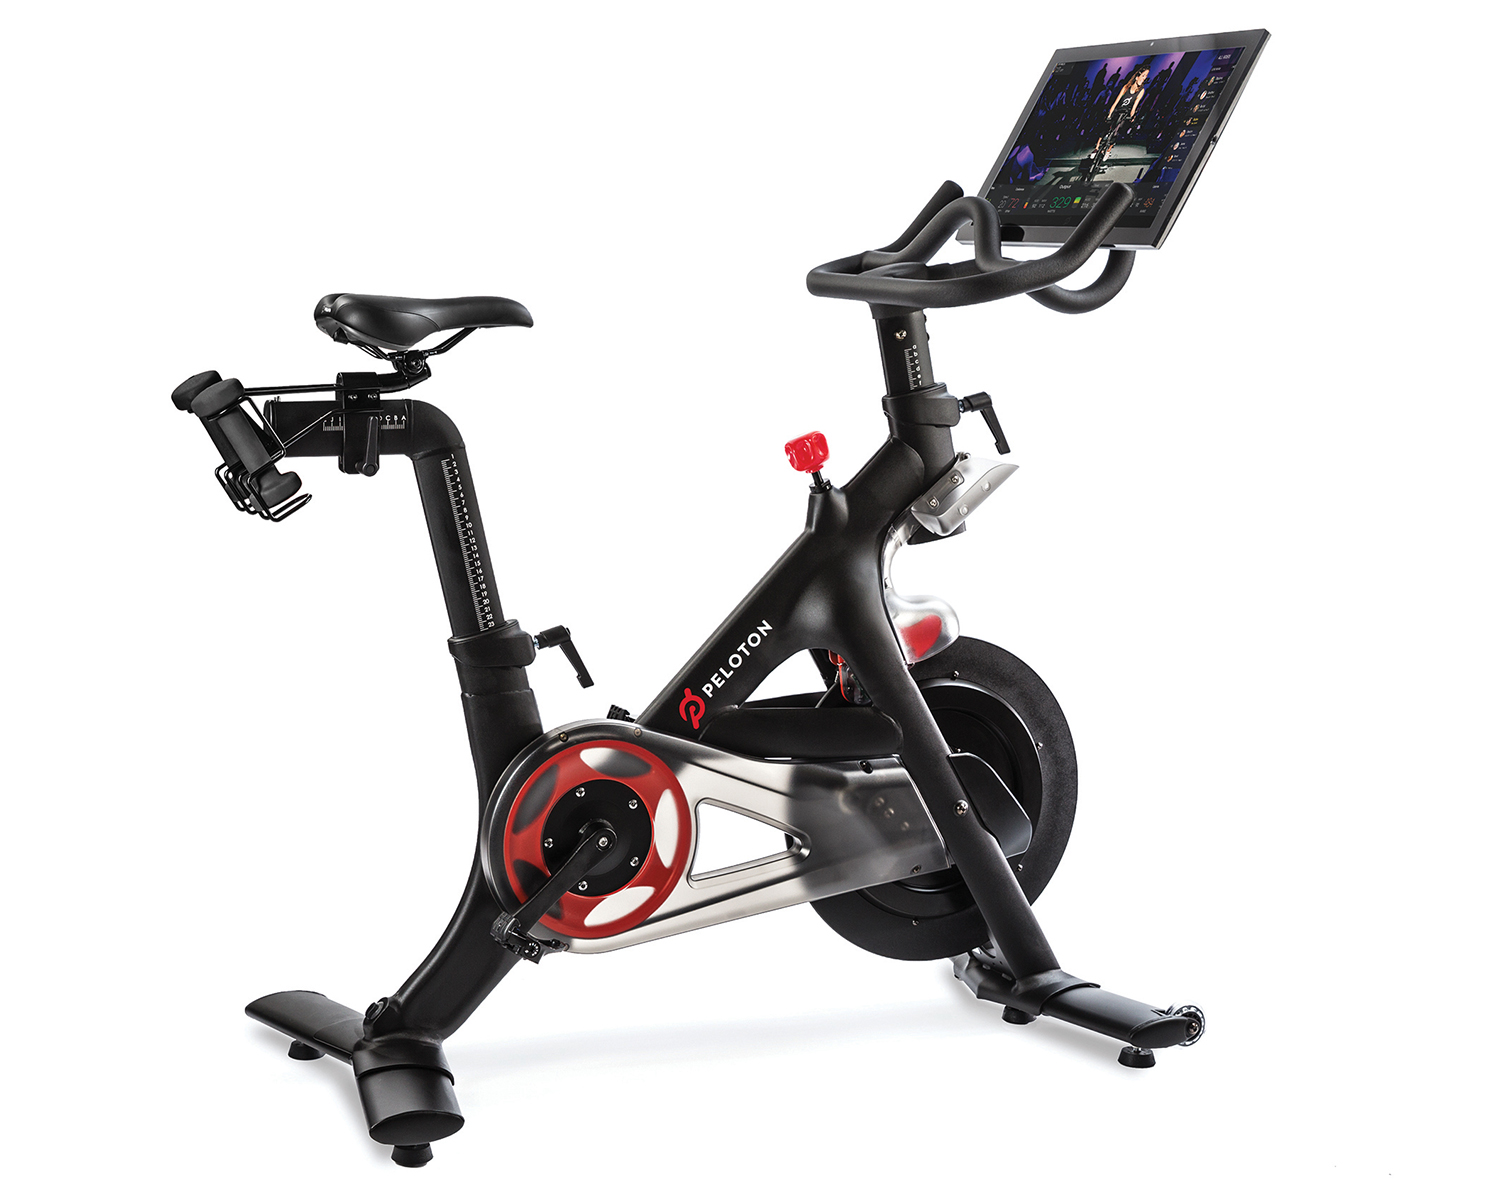 The world of Peloton: Starting with interactive bikes, the company has expanded its subscription offerings to treadmills and personal workout apps.